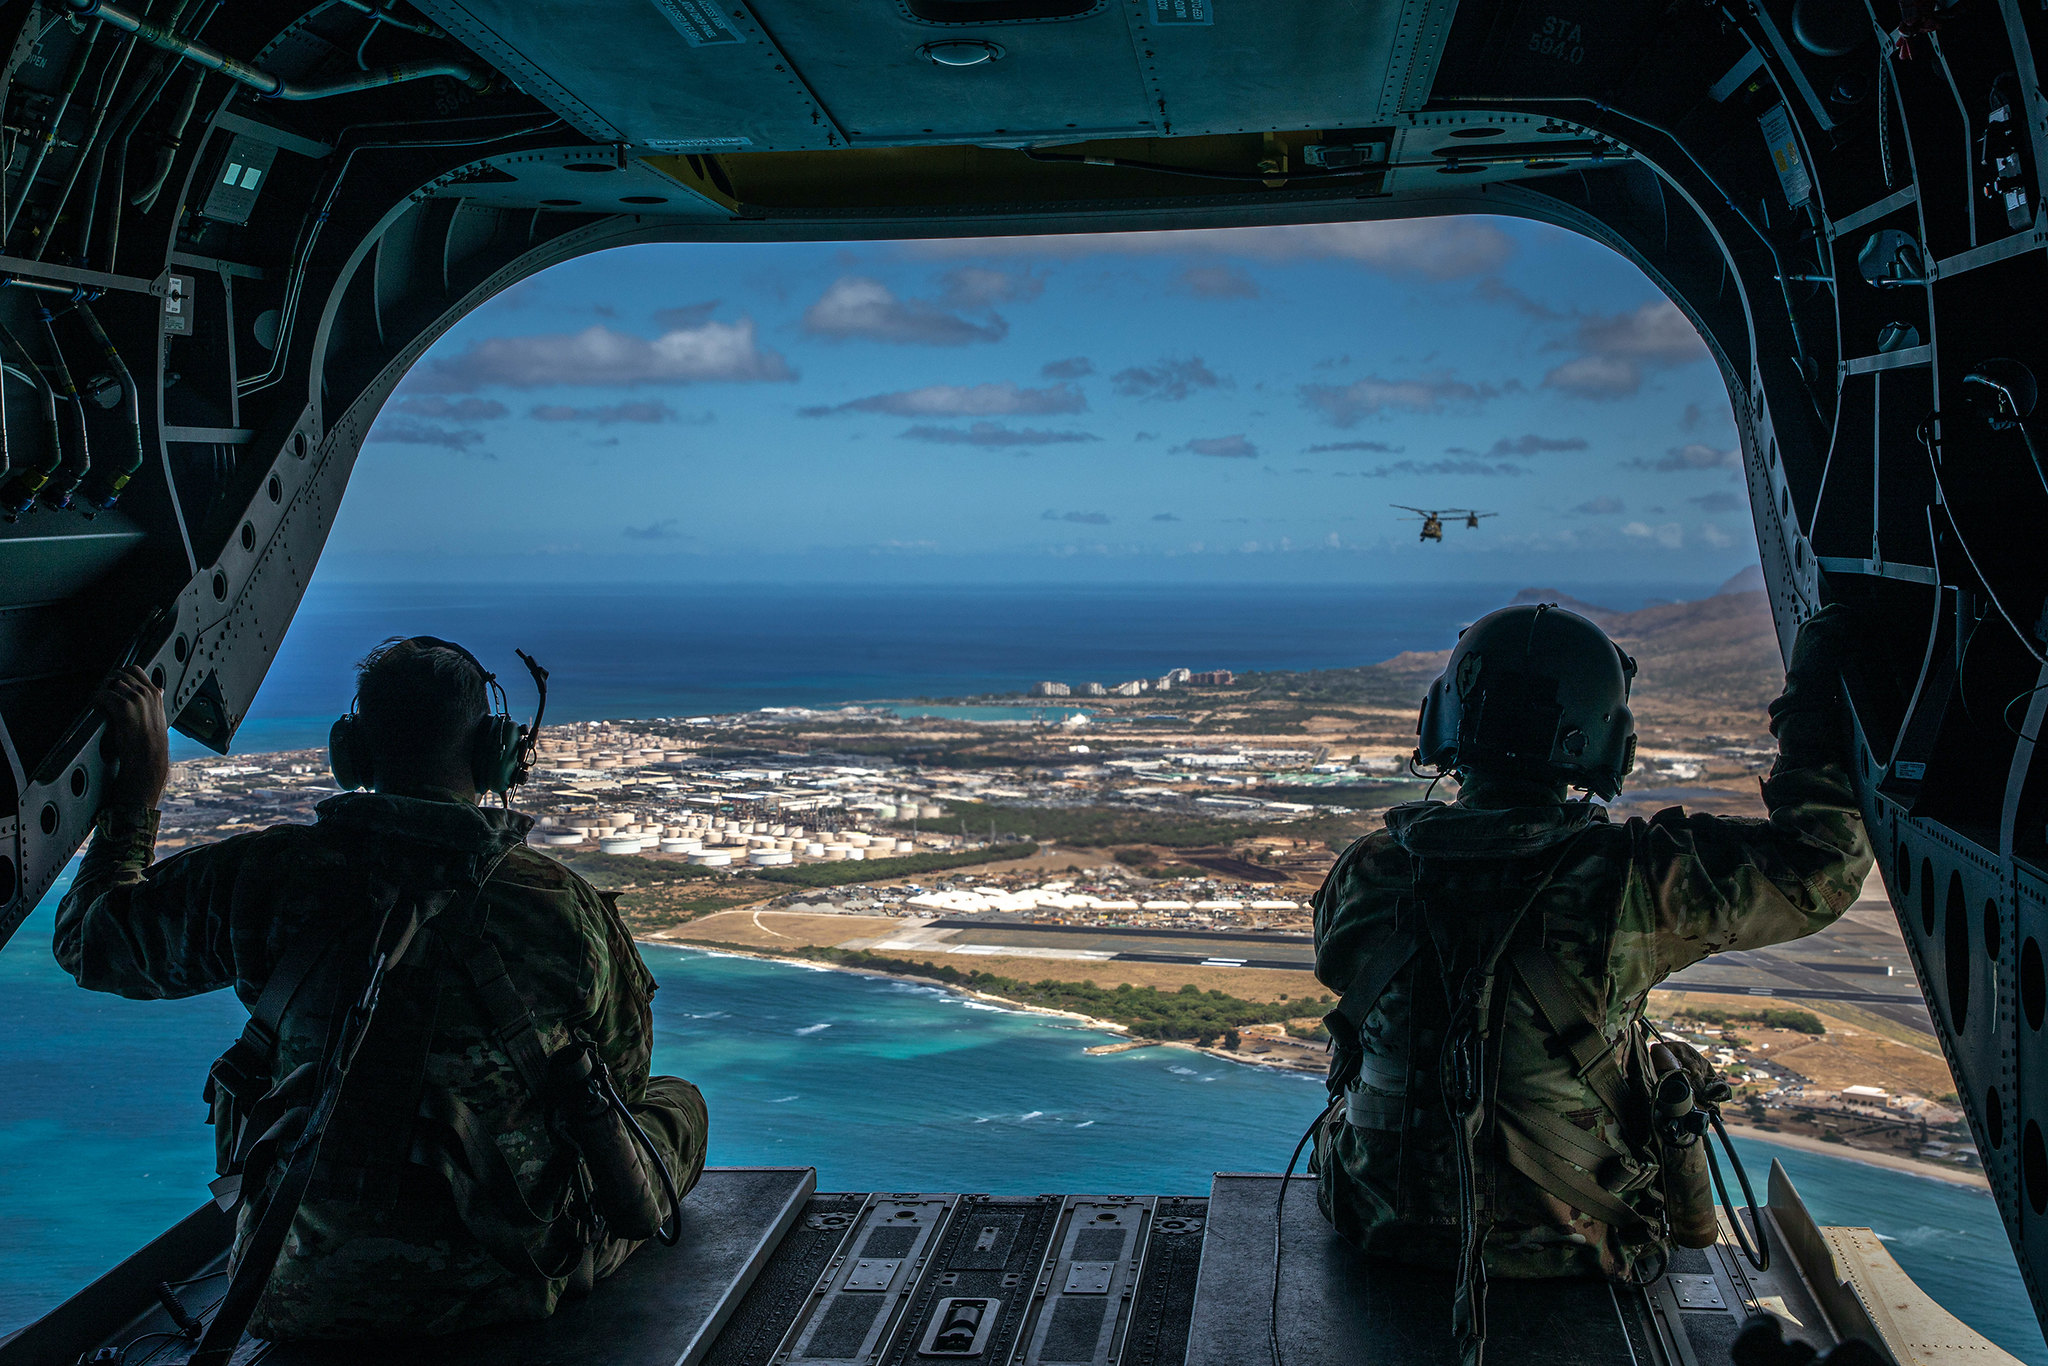 The Hillclimbers of 3rd Battalion, 25th Aviation Regiment, 25th Combat Aviation Brigade, 25th Infantry Division executed a CH-47F Chinook multi-ship flight around Hawaii islands June 10, 2020. (Sgt. Sarah D. Sangster/Army)